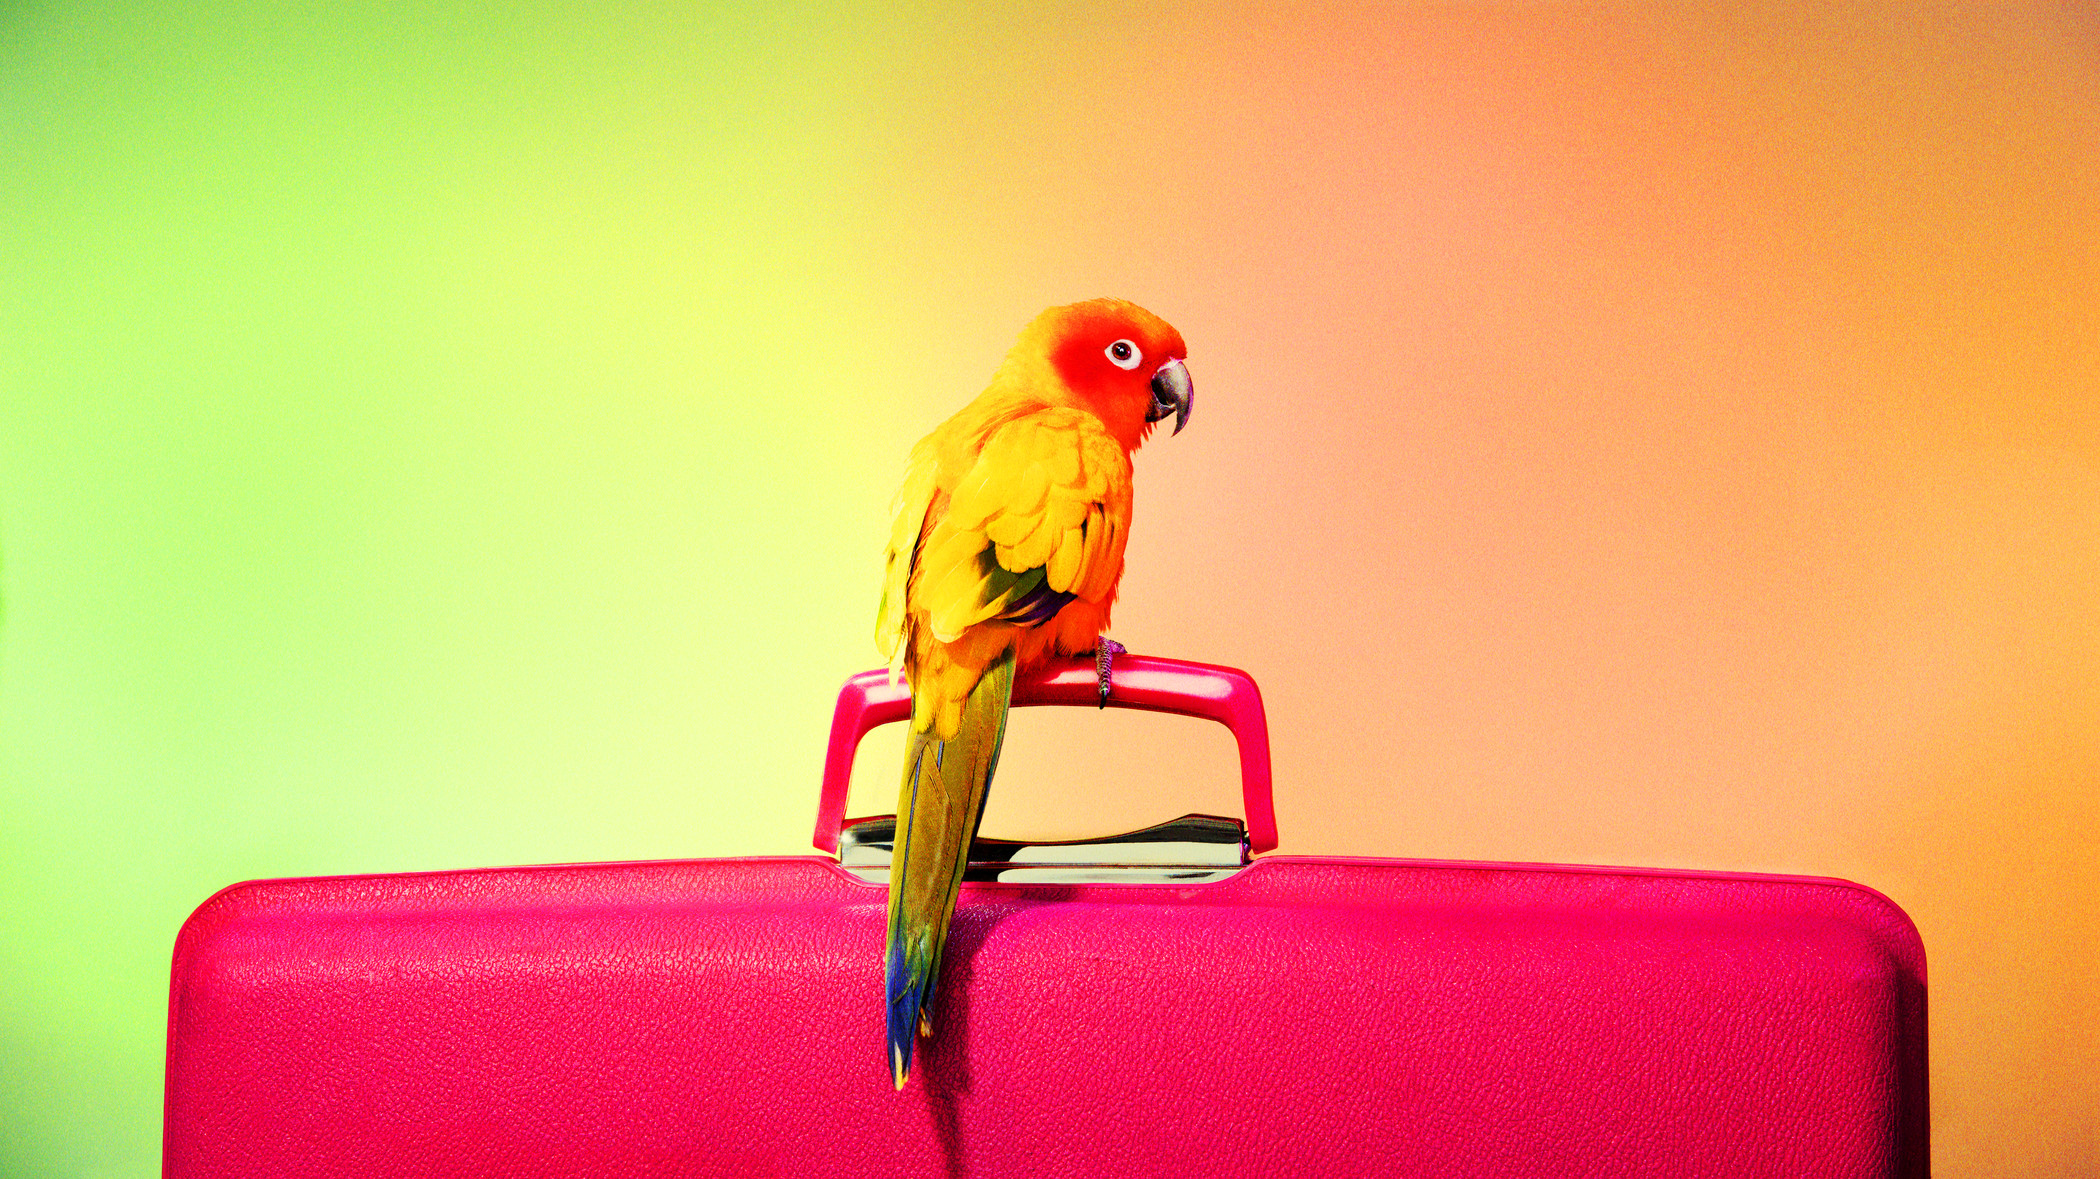 whode-195435-bird-perched-on-a-suitcase